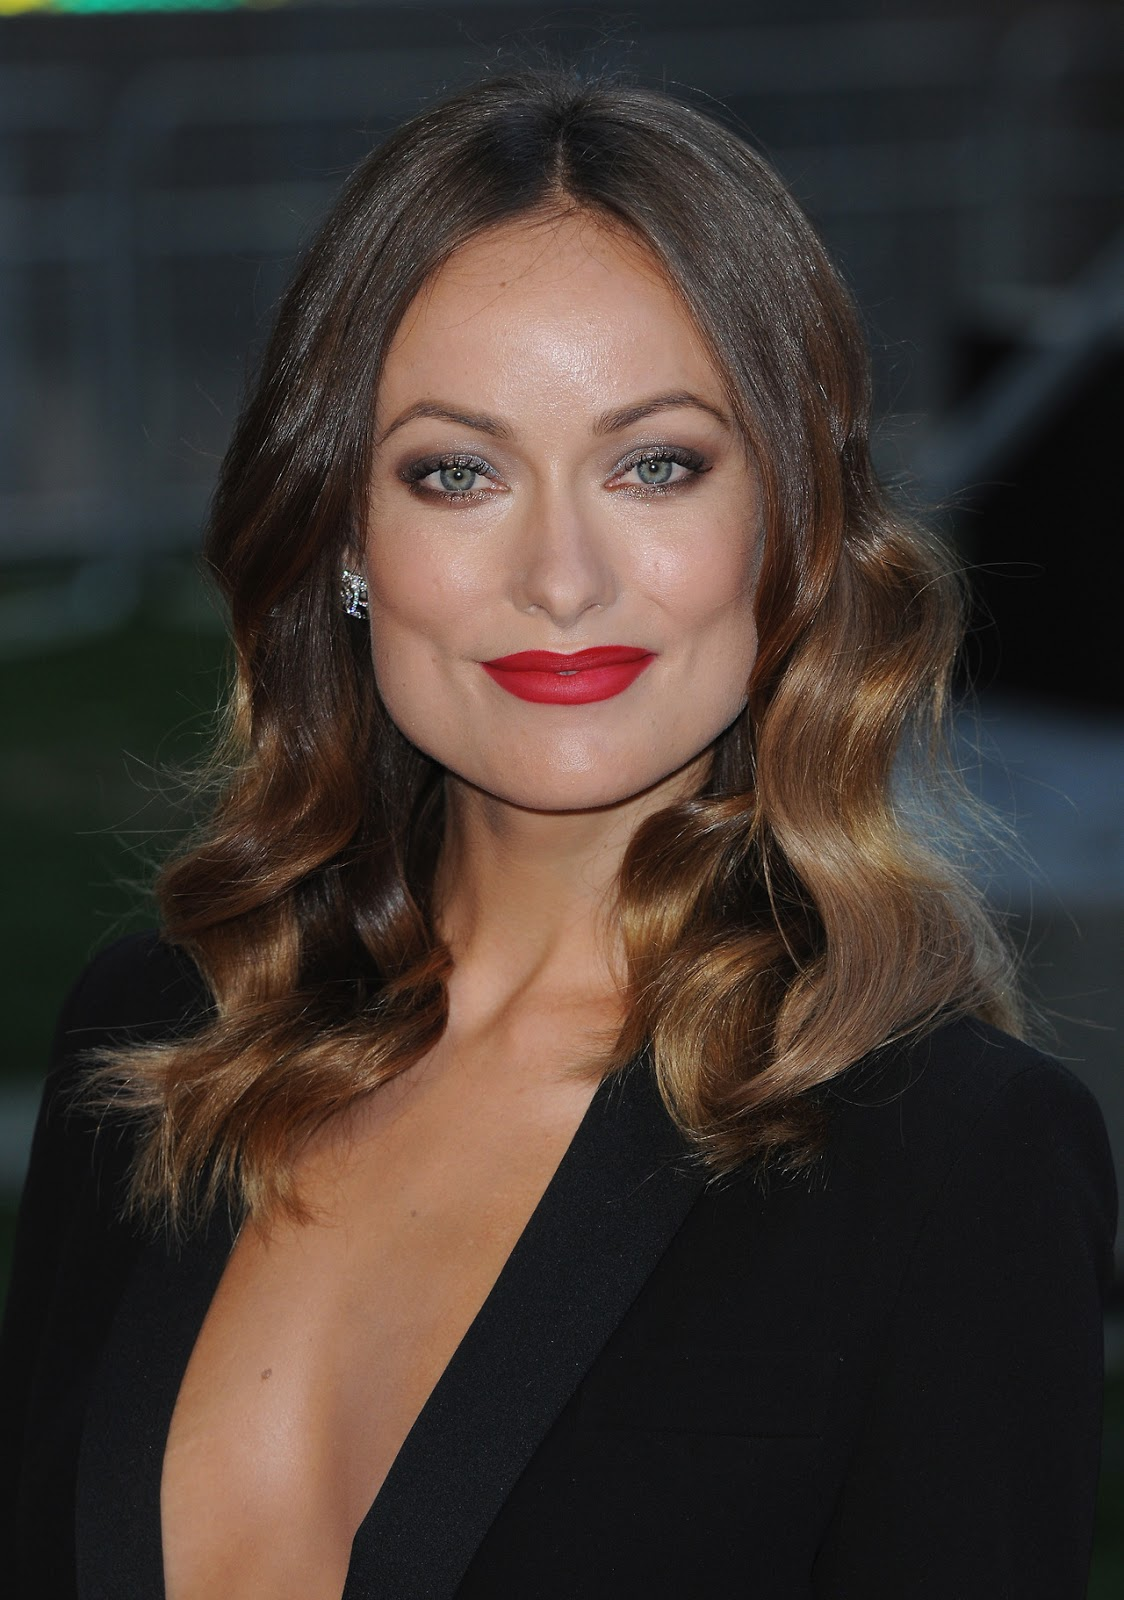 Olivia Wilde Profile And New Pictures 2013: Olivia Wilde Daily: Olivia Wilde 'Rush' London Premiere